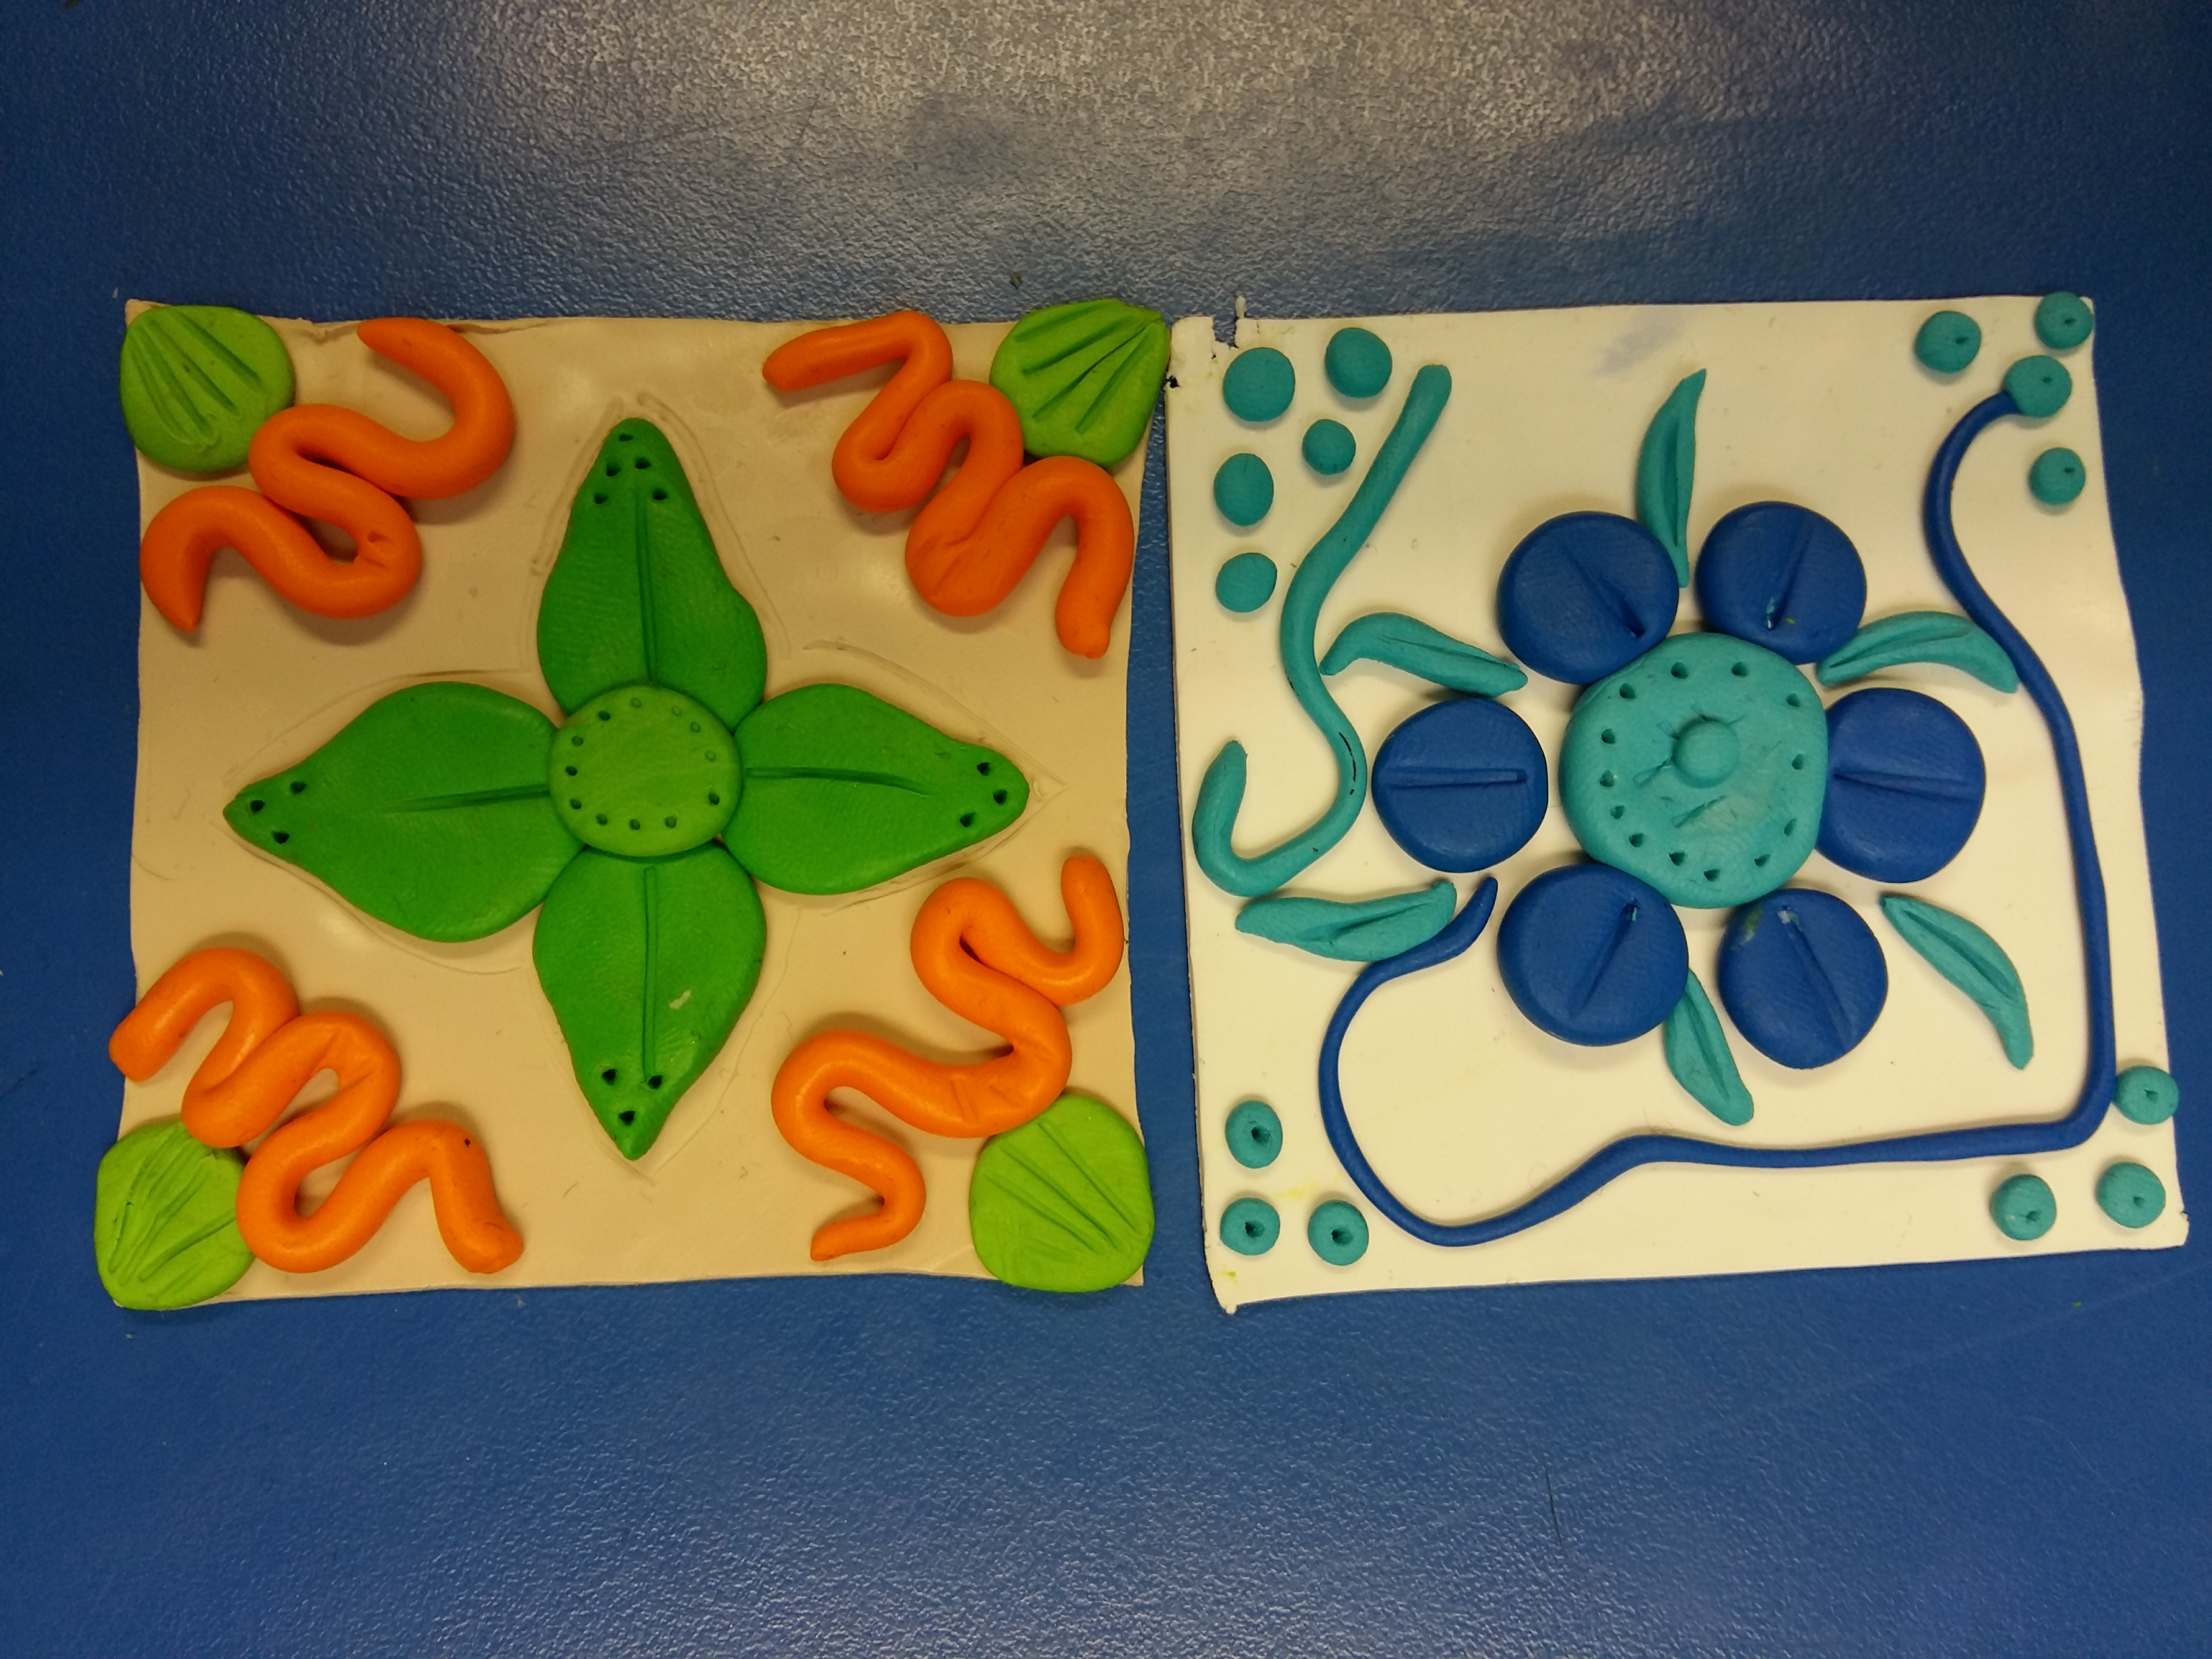 Staffordshire Pottery Tile Project